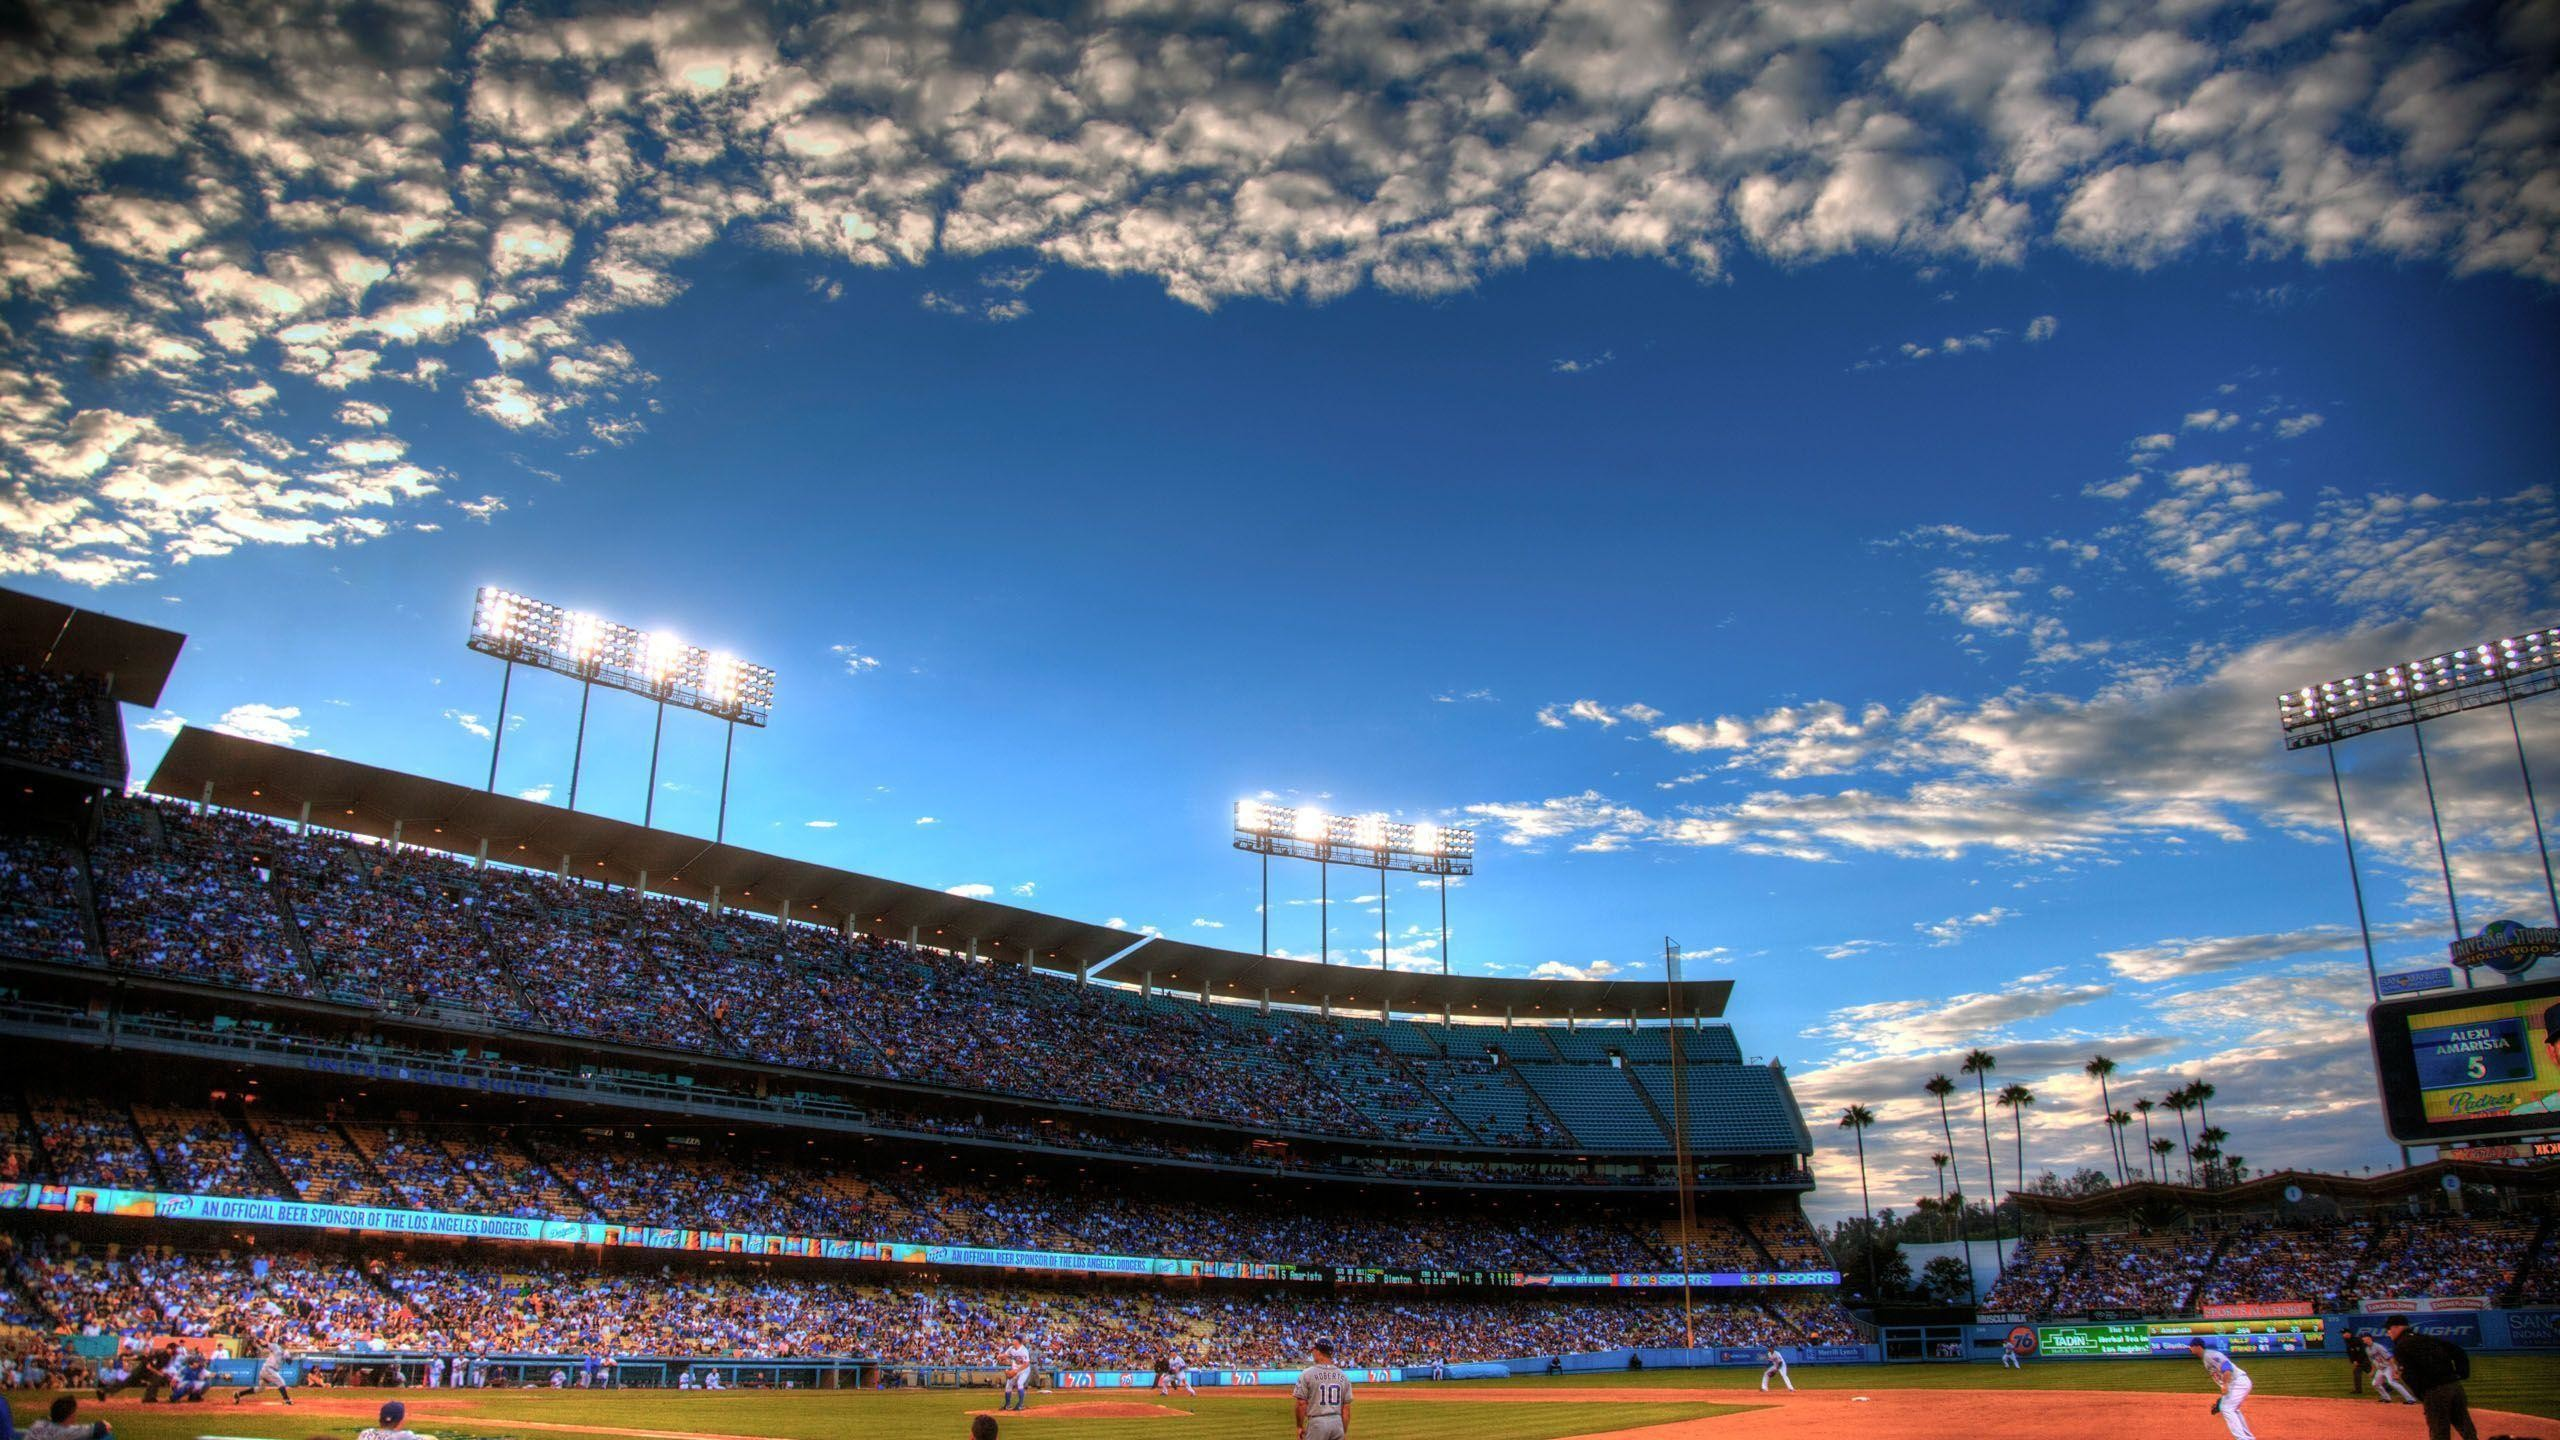 2560x1440 Los Angeles Dodgers Stadium HD Wallpaper Download Logo And Photo .